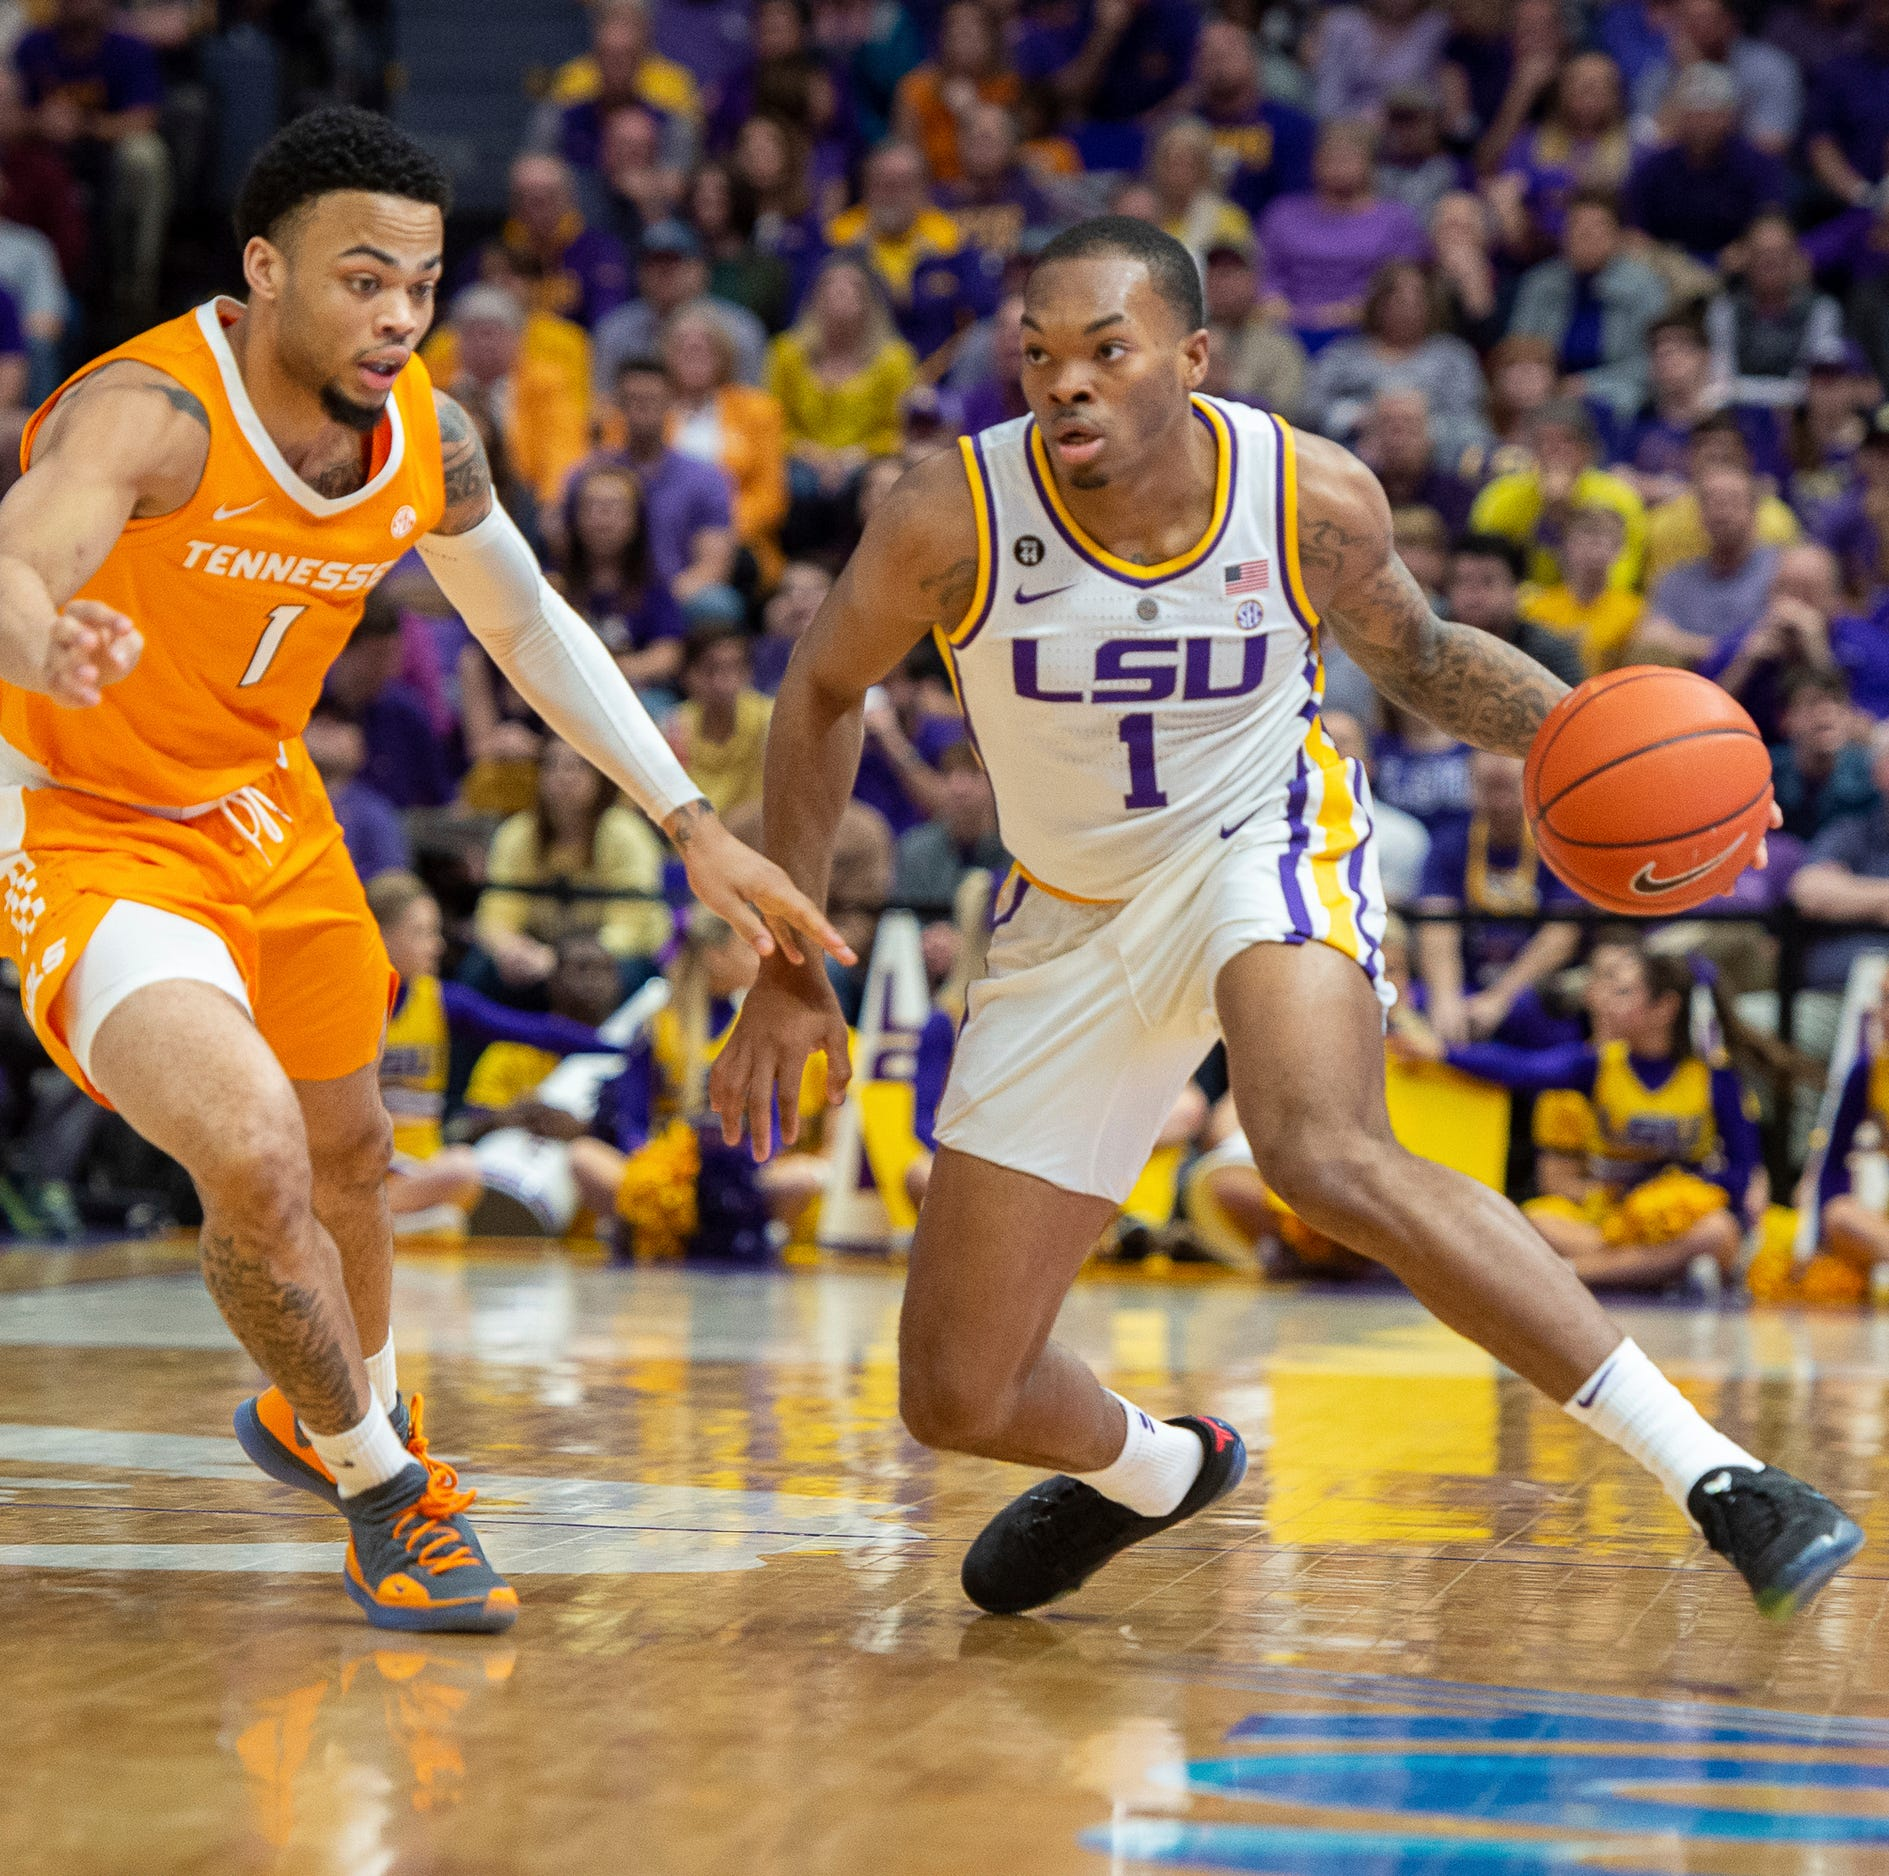 No. 13 LSU beats No. 5 Tennessee, 82-80, in OT without Waters and with Naz Reid scoring 1